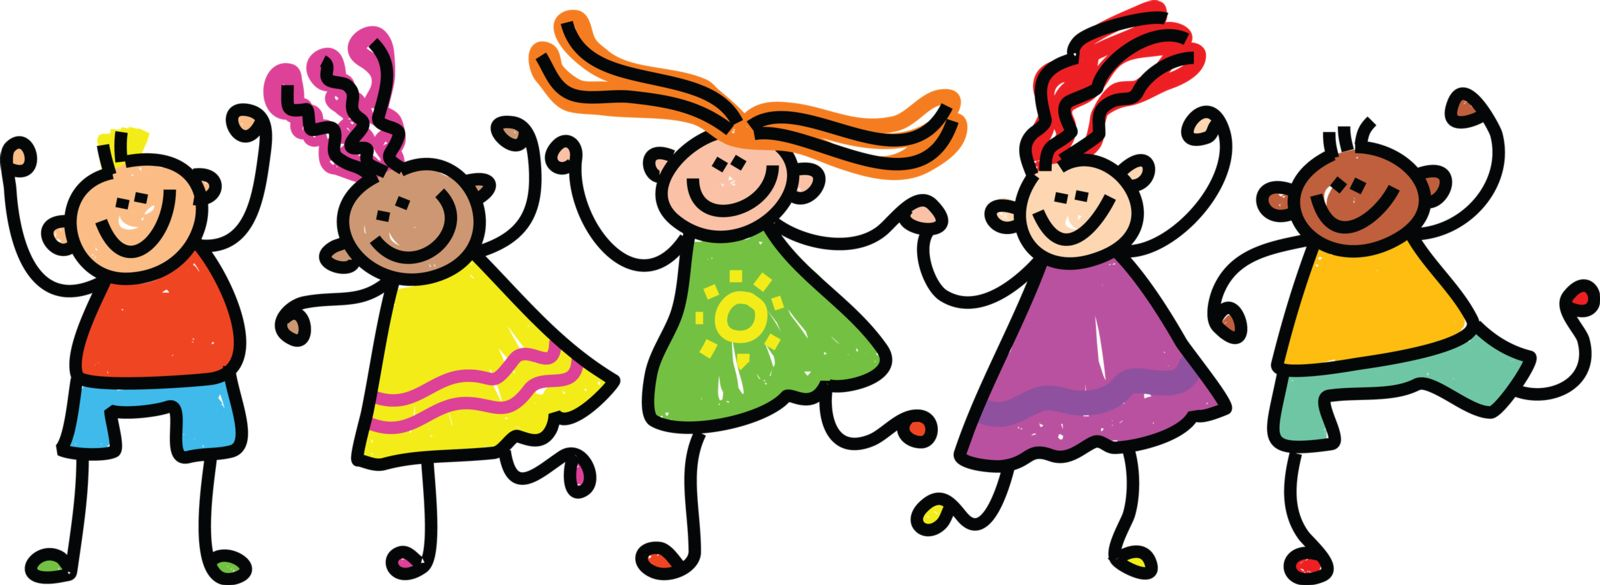 1600x585 Clip Art Of Friends Free Collection Download And Share Clip Art